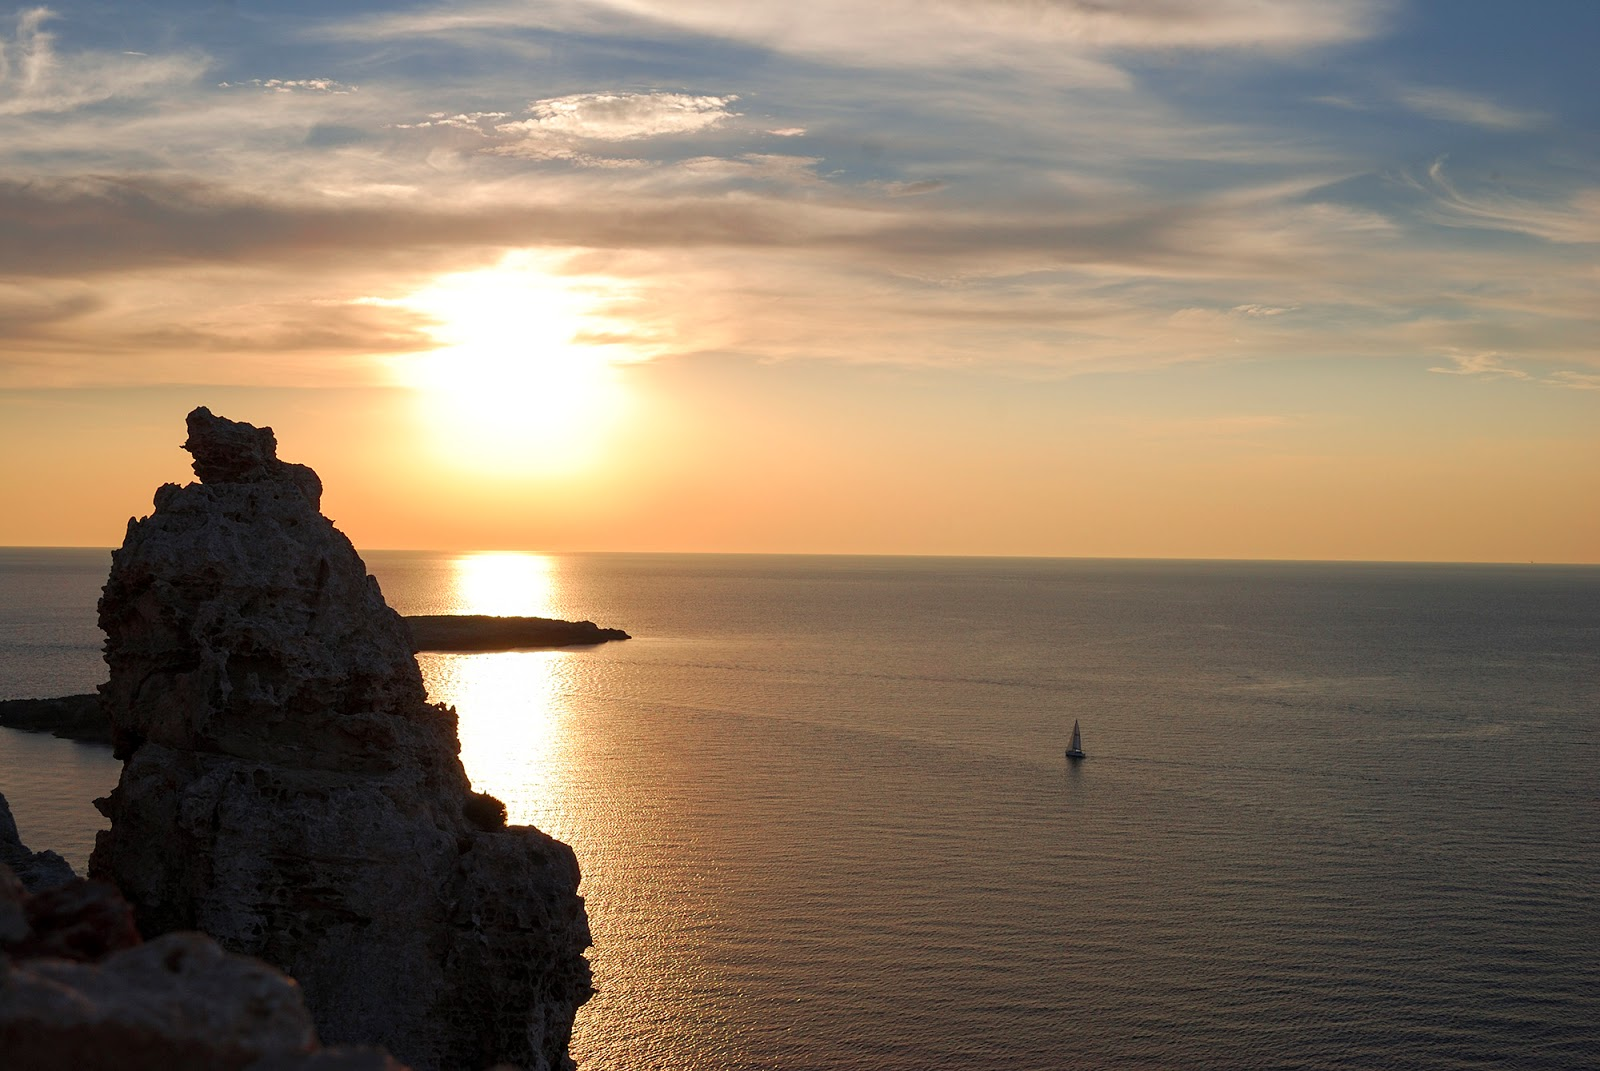 Sunset Menorca Spain Cavallaria lighthouse itinerary what to do